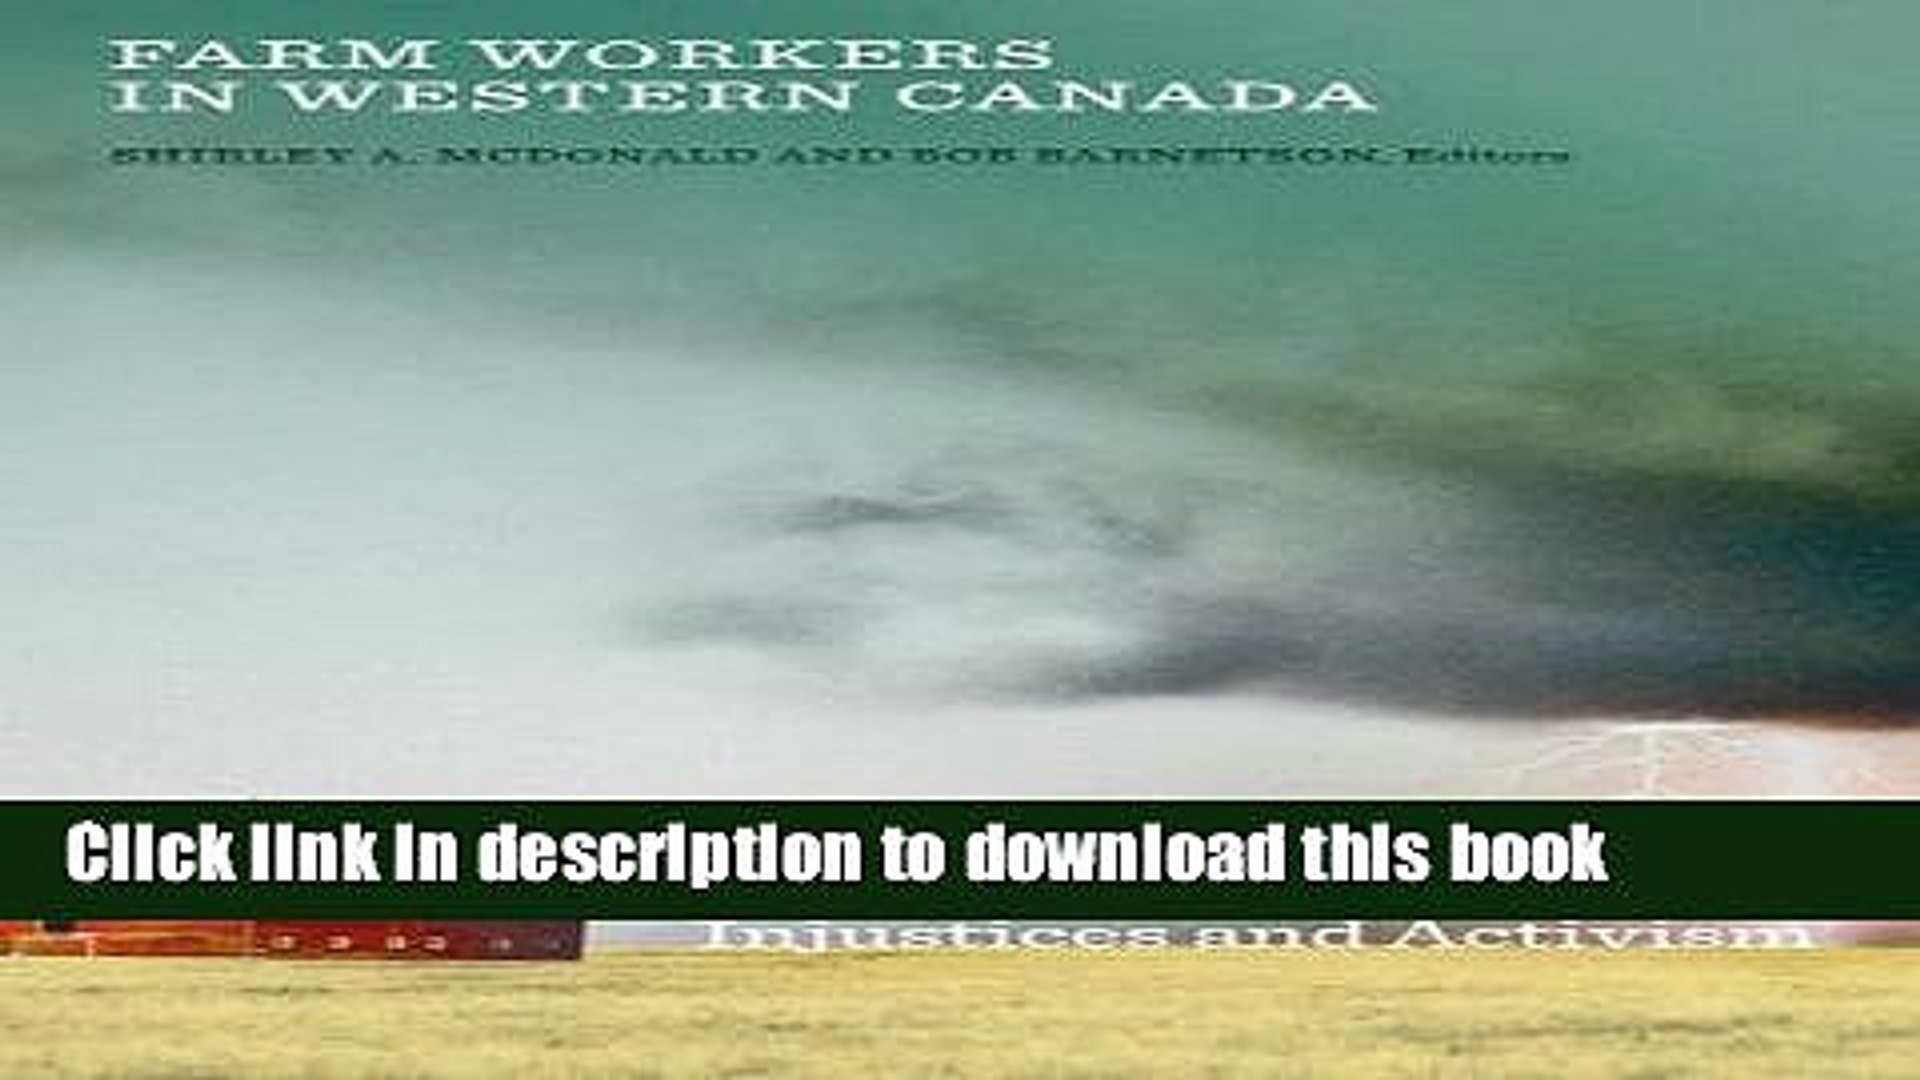 [PDF]  Farm Workers in Western Canada: Injustices and Activism  [Download] Online